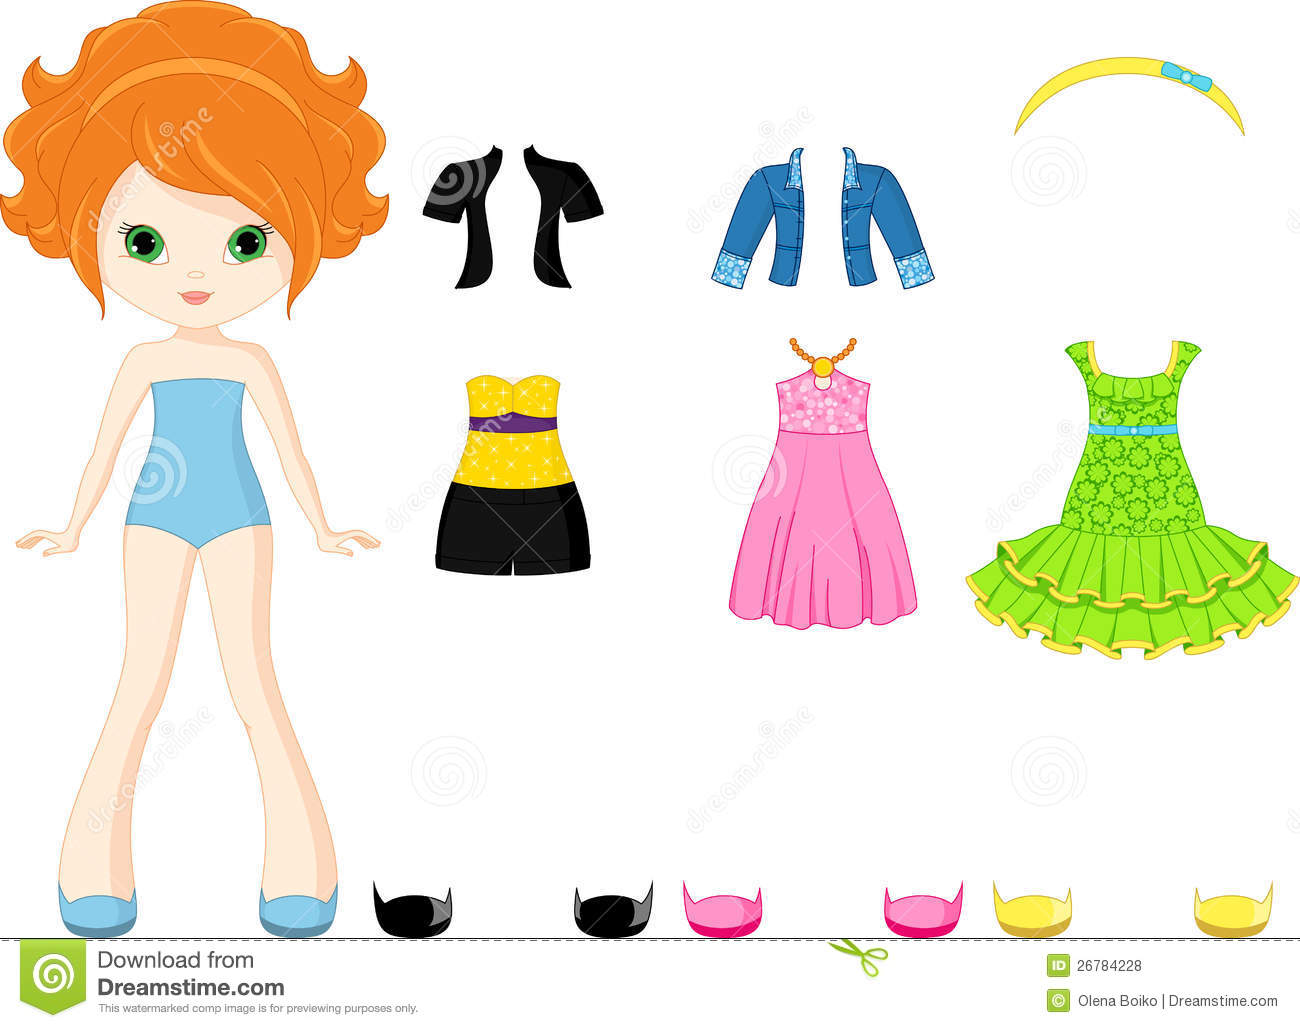 Doll clipart doll clothes Paper dolls Clip Royalty clipart